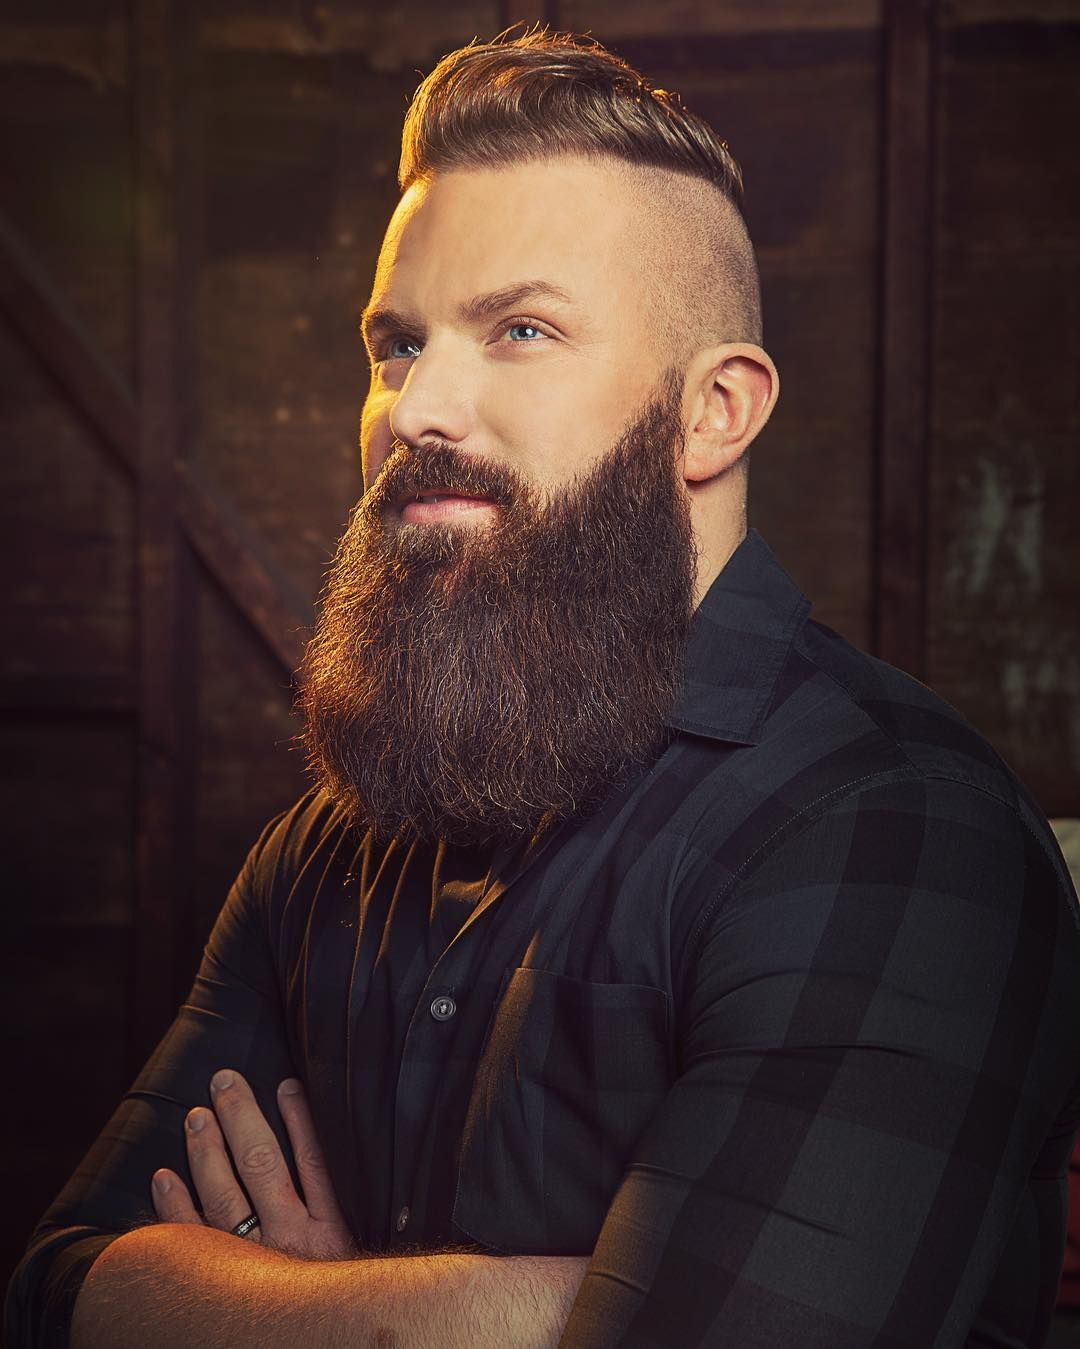 images of mens hair styles pin by helen miller on beard styles 7439